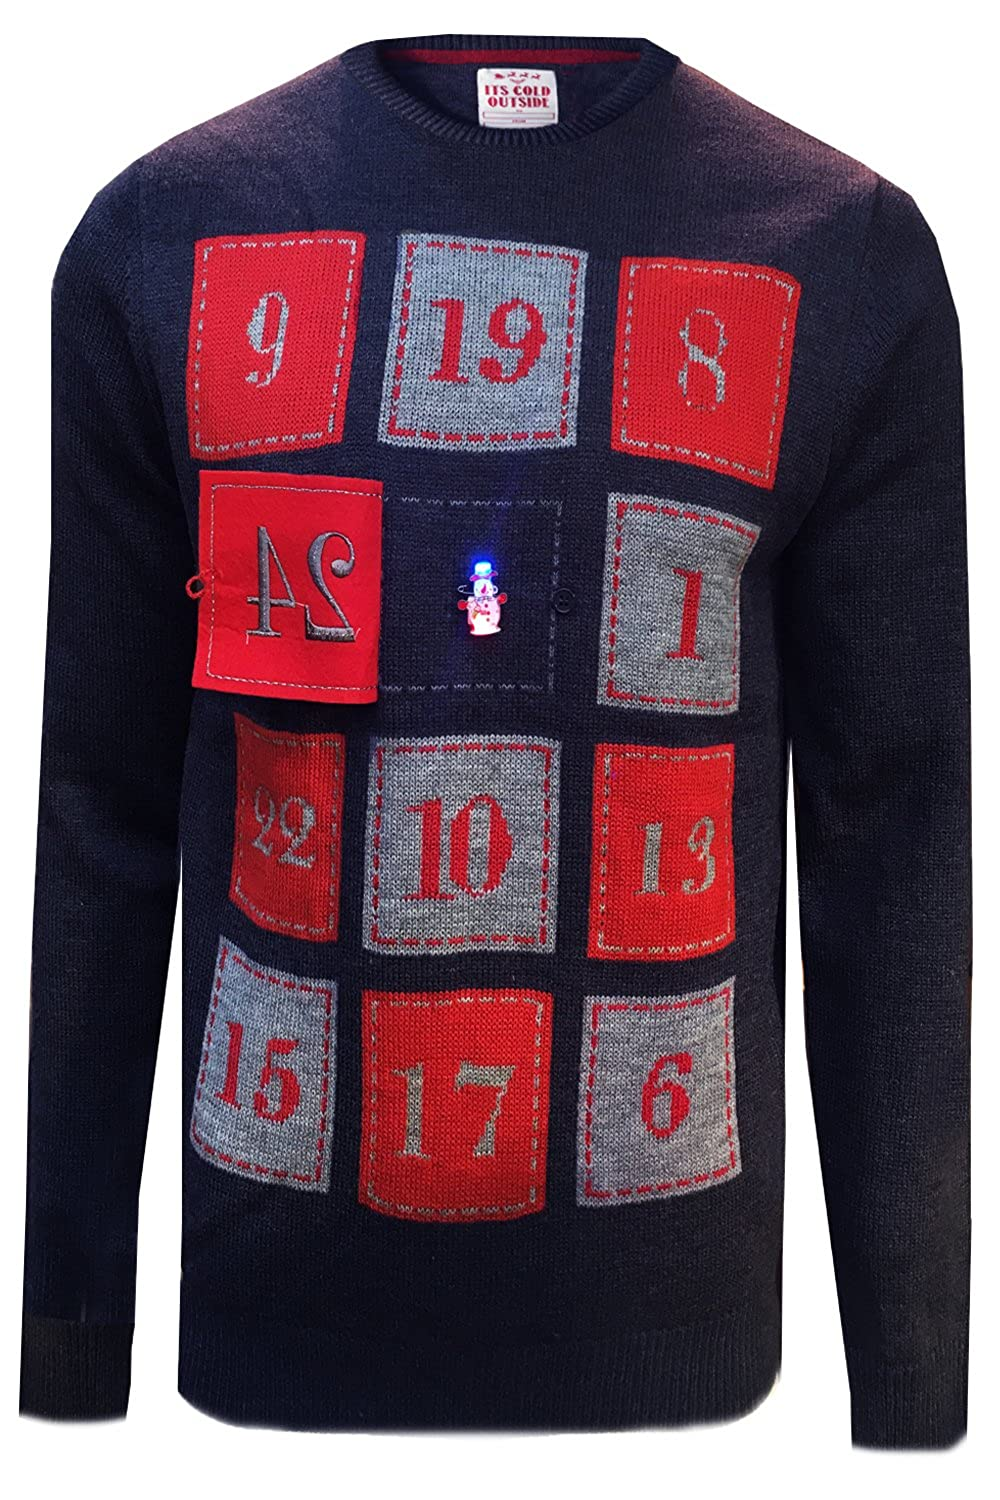 Mens Xmas Christmas Jumper Novelty Knit LED Lights Jumpers by Threadbare Imt159